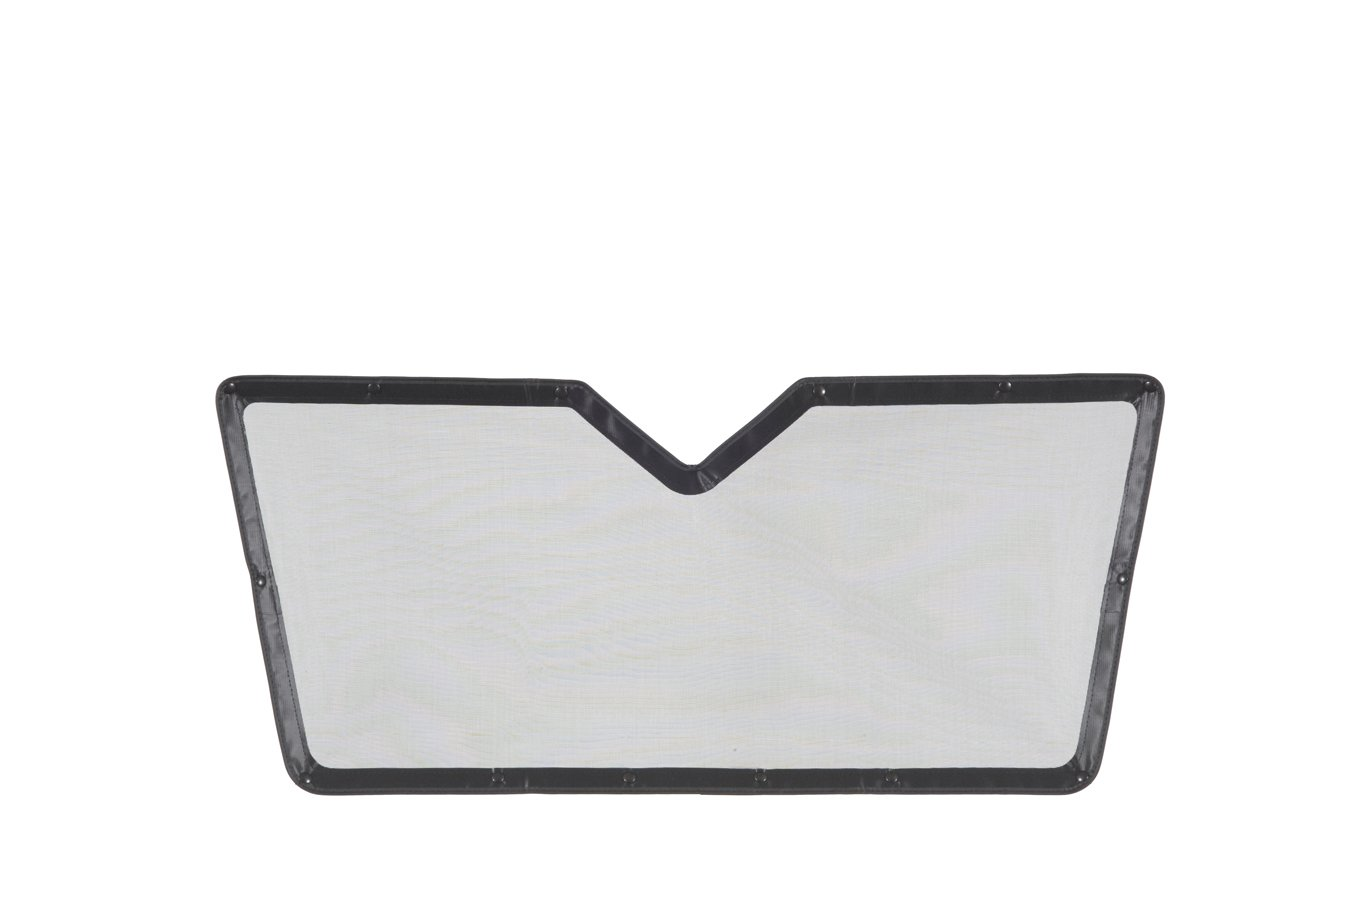 Belmor BS-2213-1 Black Bug Screen Truck Grille Cover for 2005-2016 International ProStar by Belmor (Image #1)